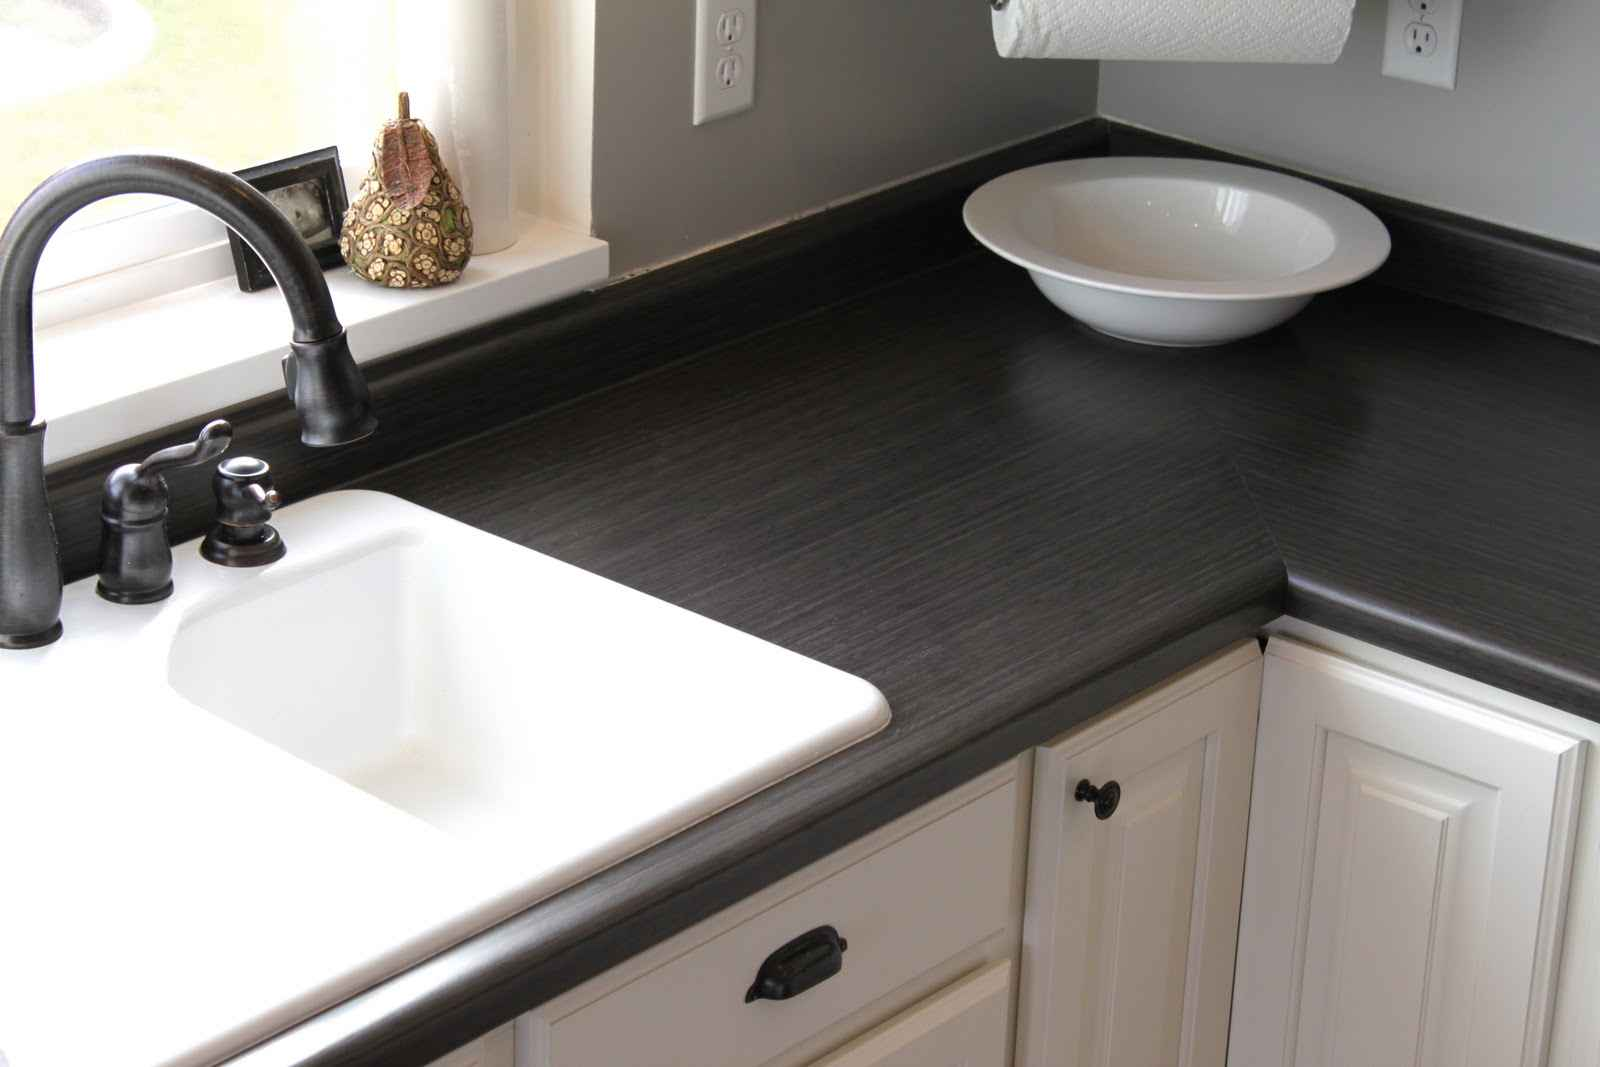 Laminate Countertop Sink Options : cheap countertop options with black laminate countertops and sink plus ...